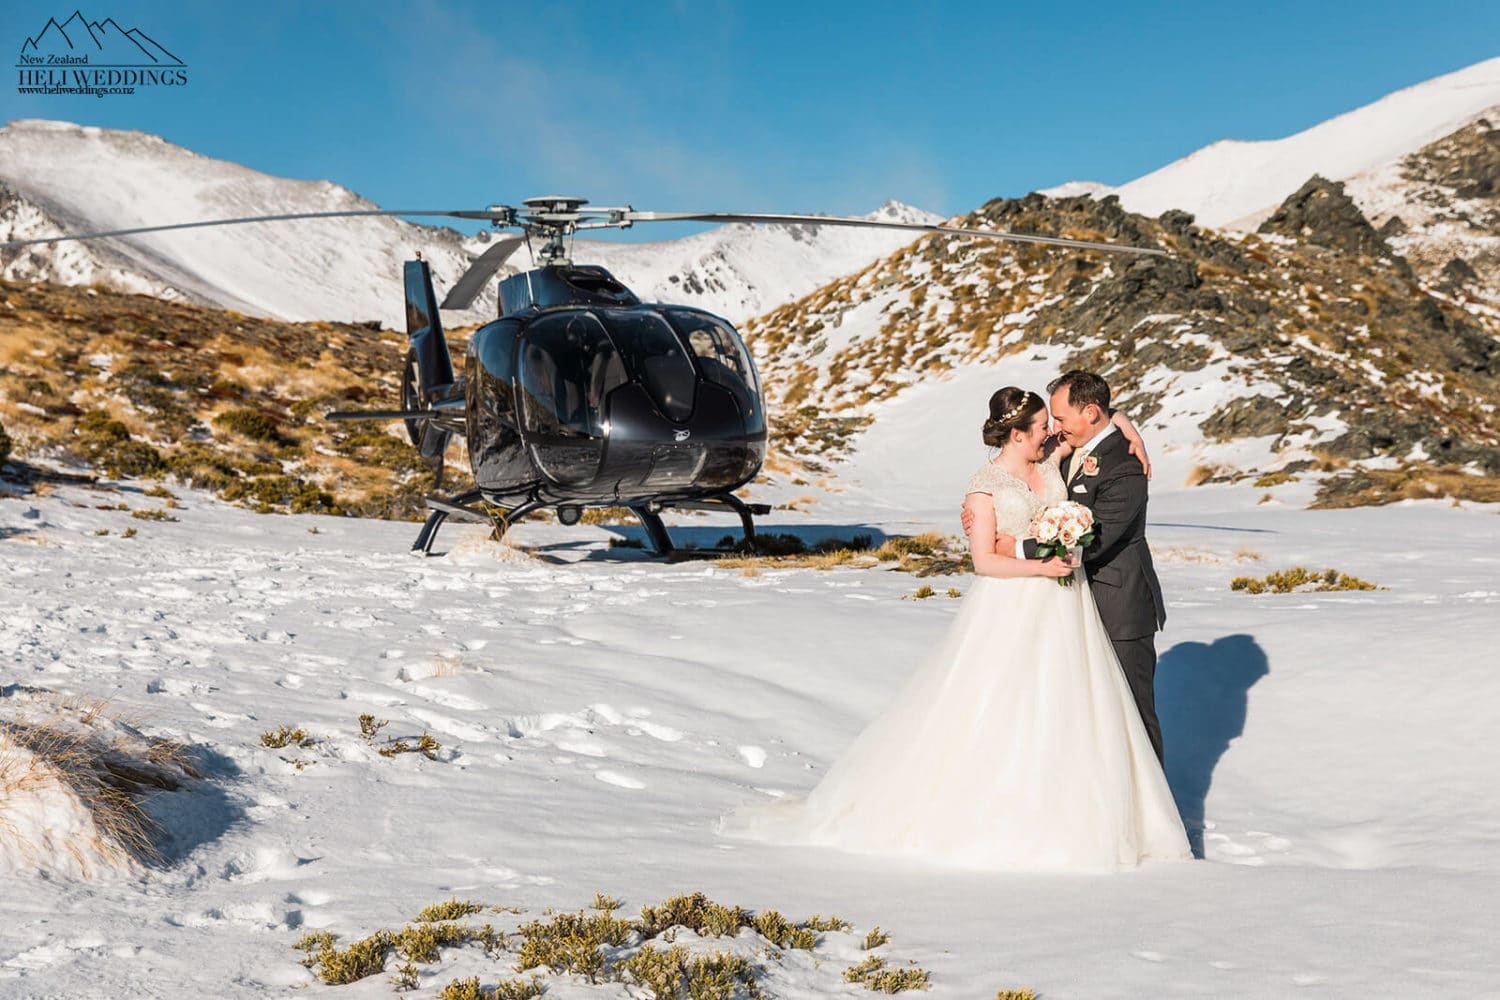 Heli Wedding in Queenstown